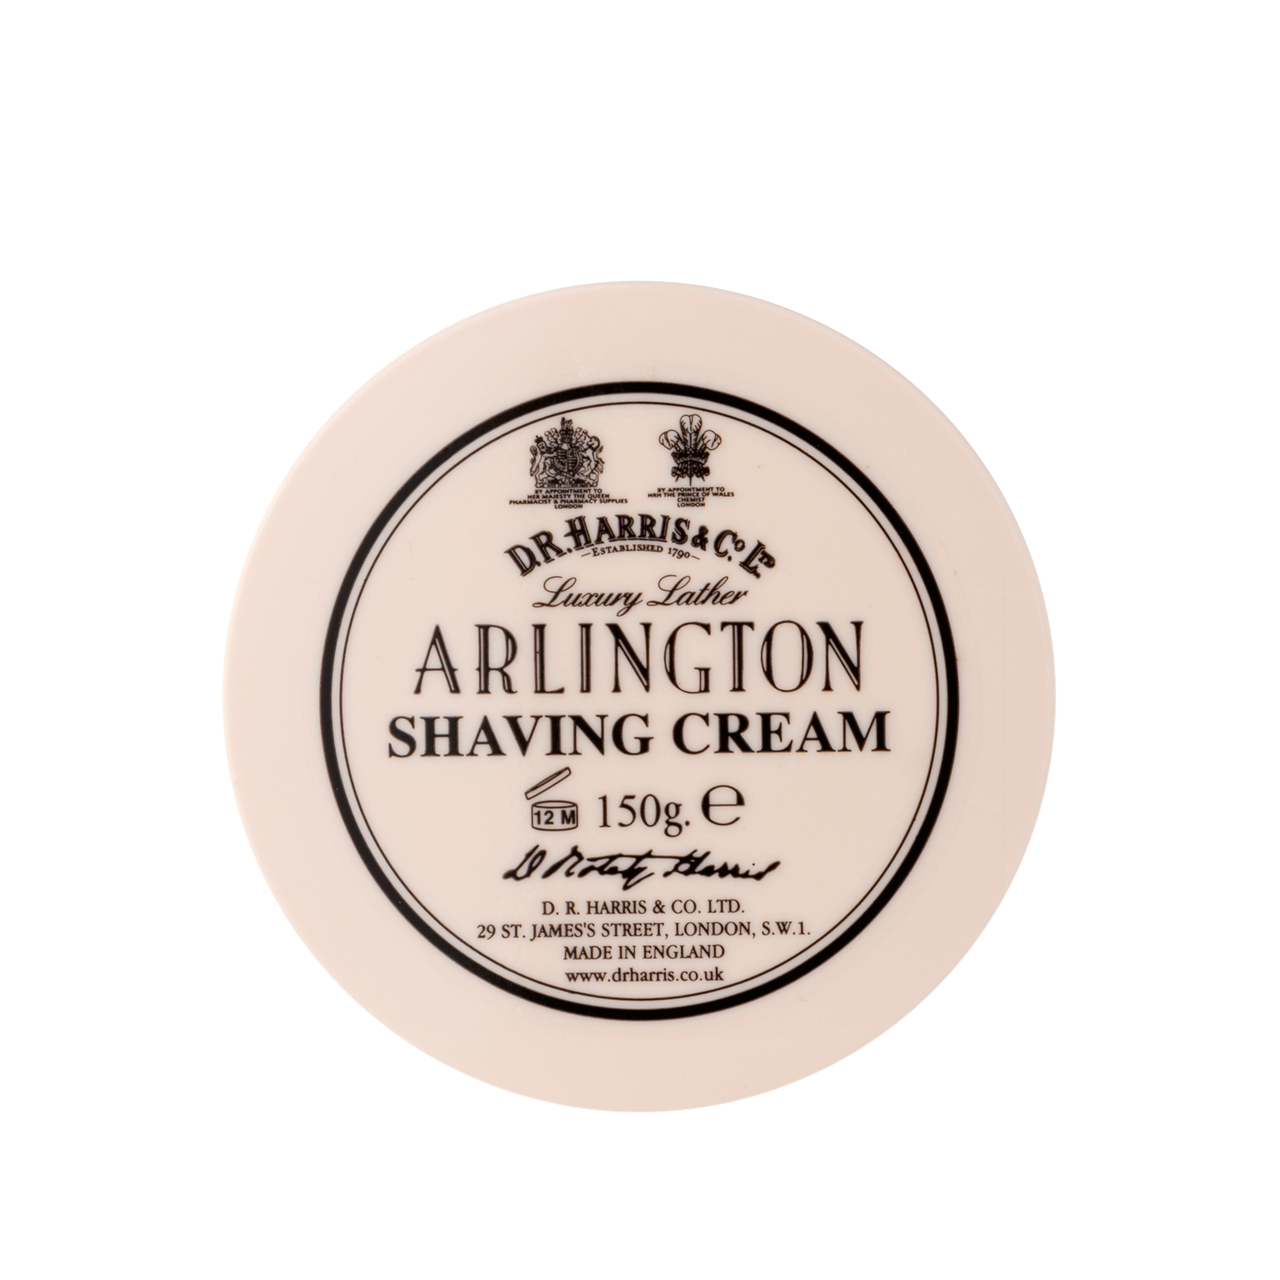 Arlington - Shaving Cream Bowl